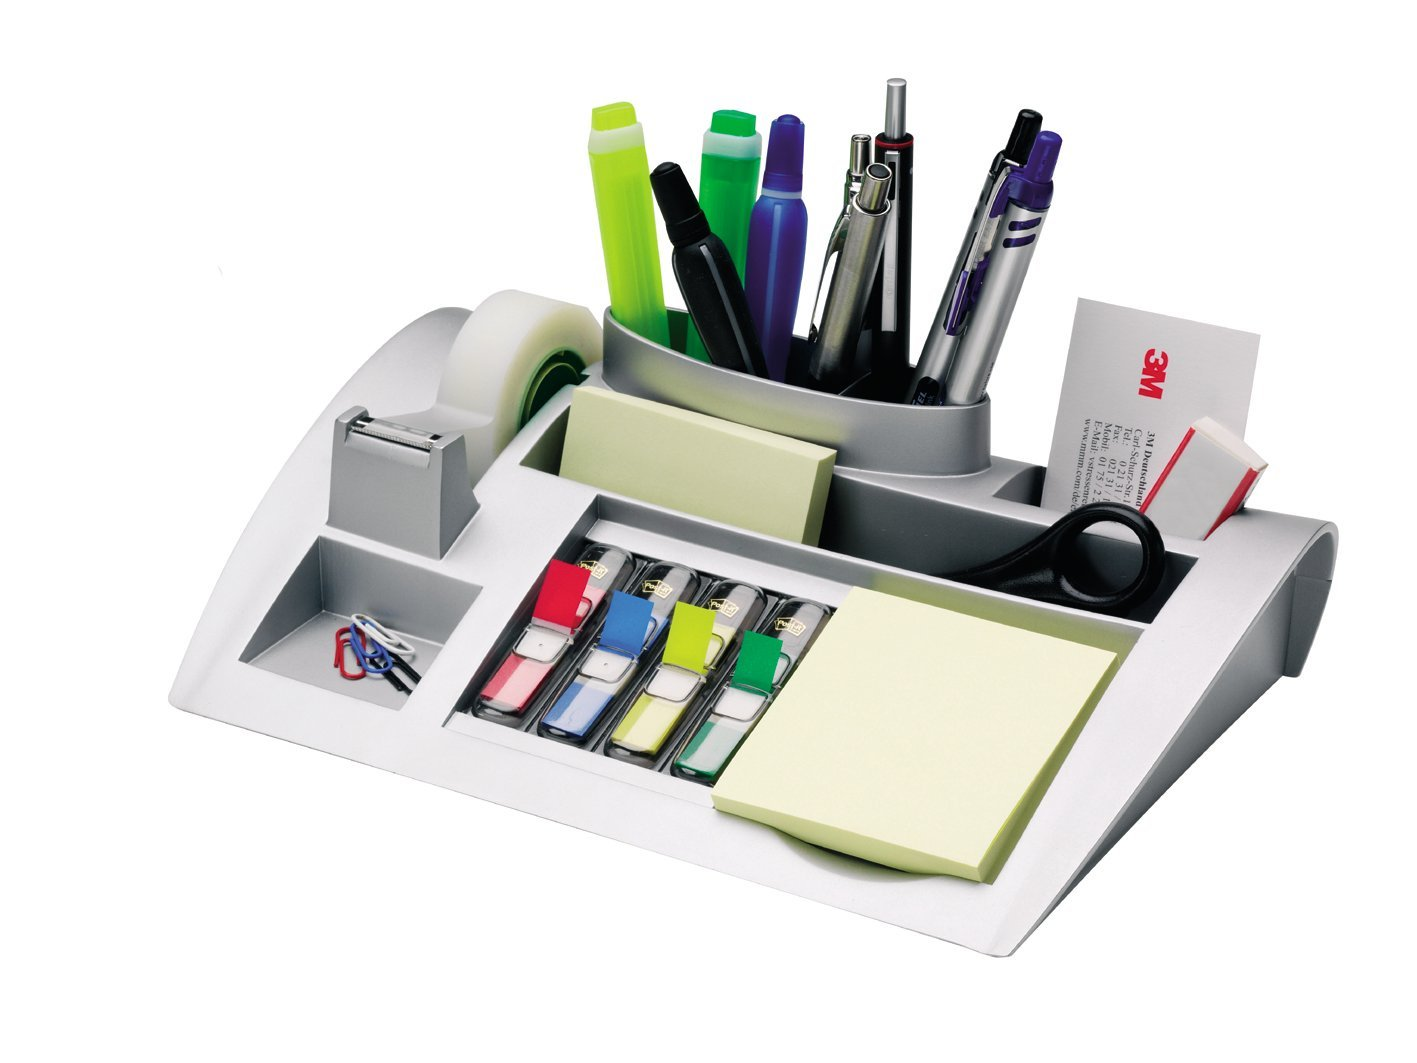 Post-it C50 Desk-Organiser for improved workflow with notes, index tabs and Scotch Tape - 1x Organiser pre-loaded with stationery and supplies